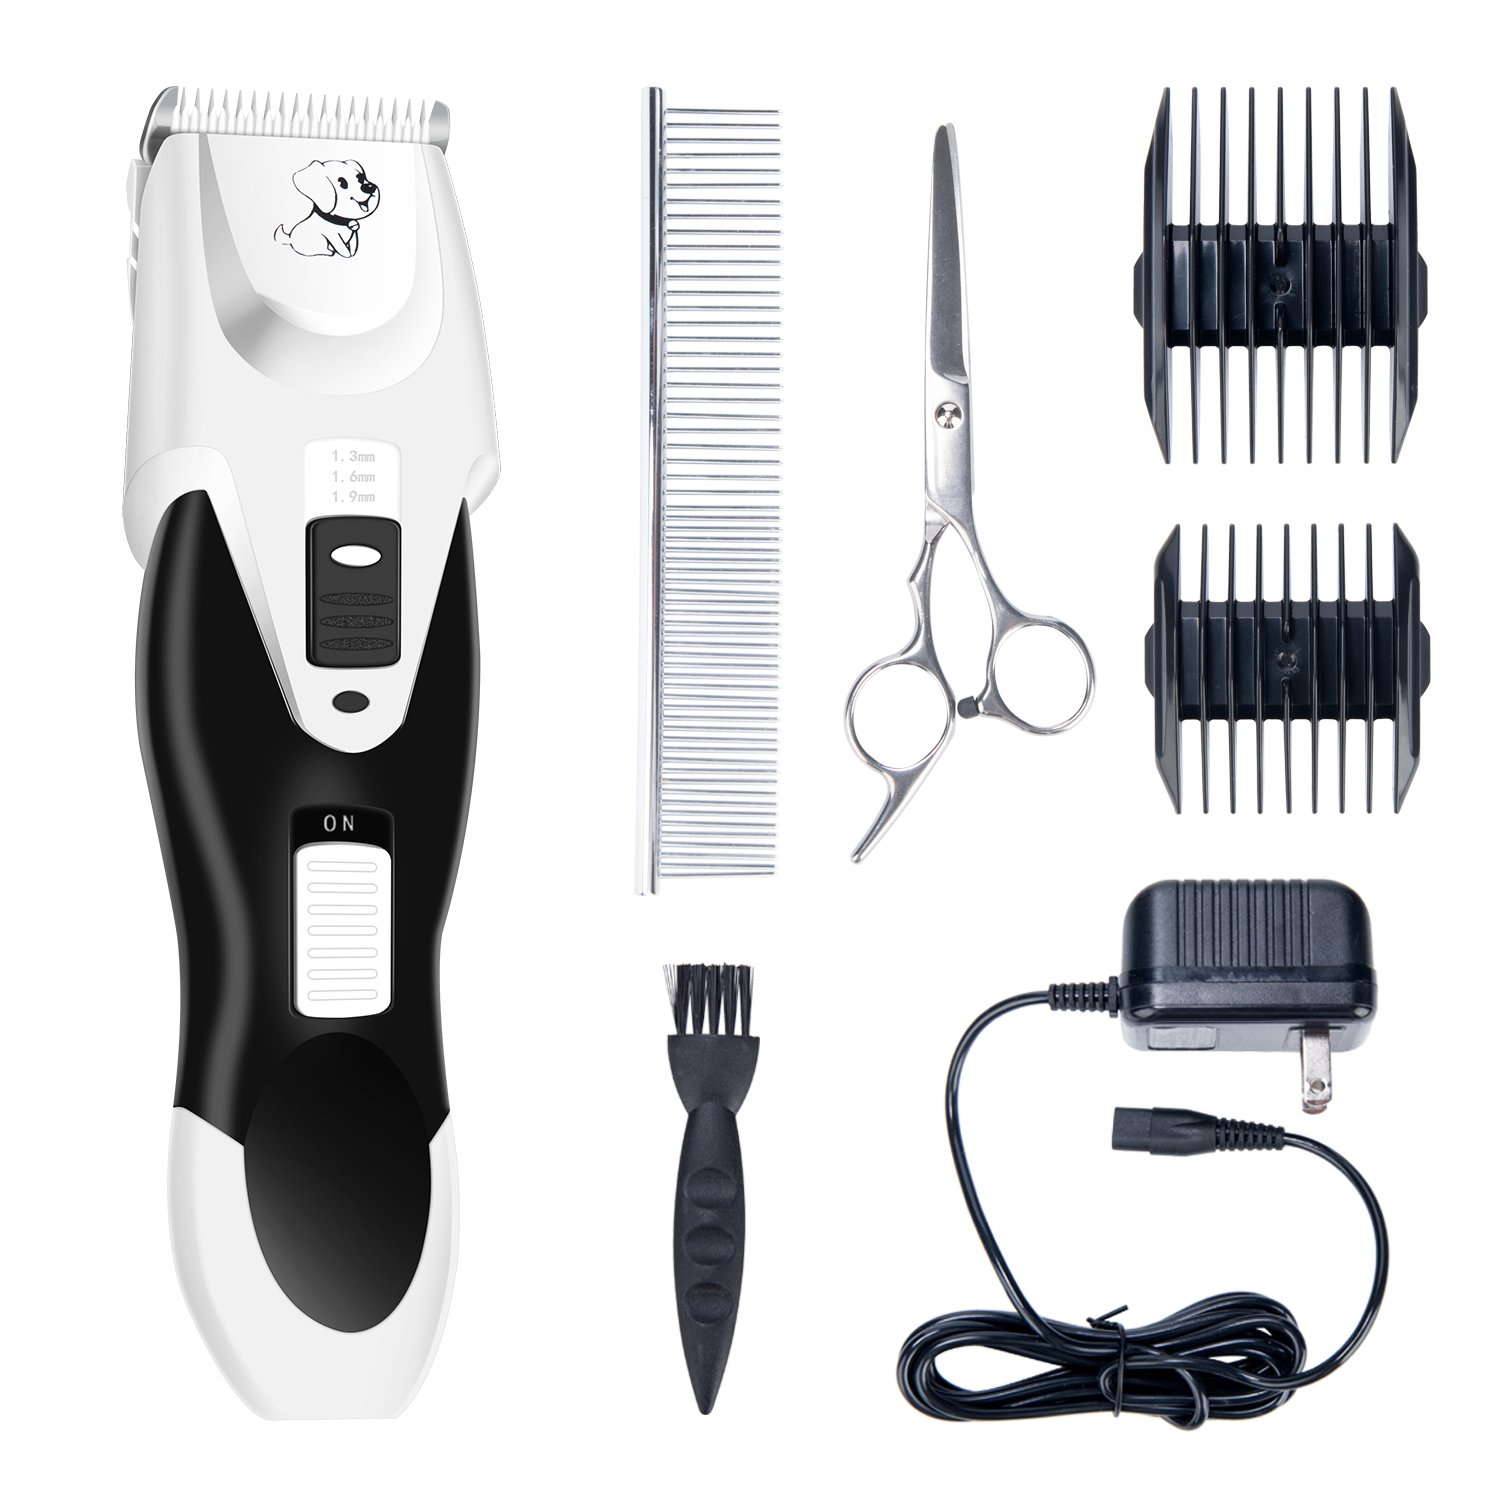 DCCOMPRAS Dog Electric Clipper Cat Shaver Low Noise Pet Grooming Clippers Tool Rechargeable Cordless Trimmer Pet Grooming kit Detachable Blades scissors for Dogs Cats and Other Animals